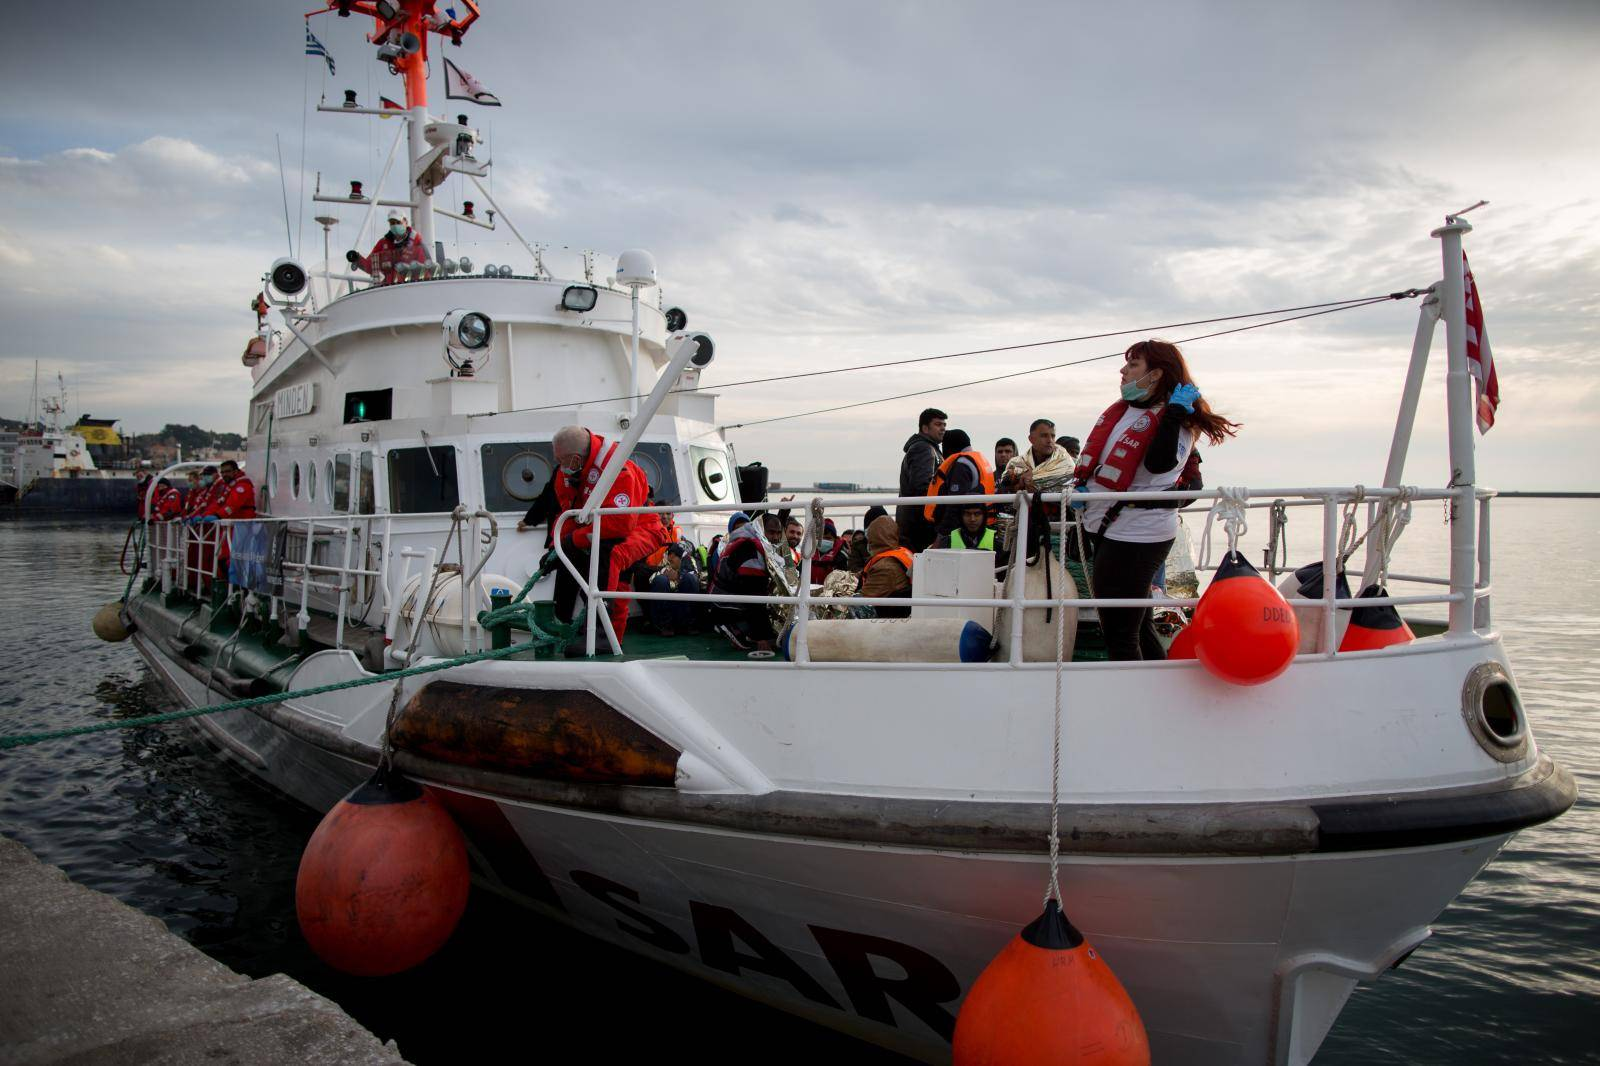 Refugees on the island of Lesbos